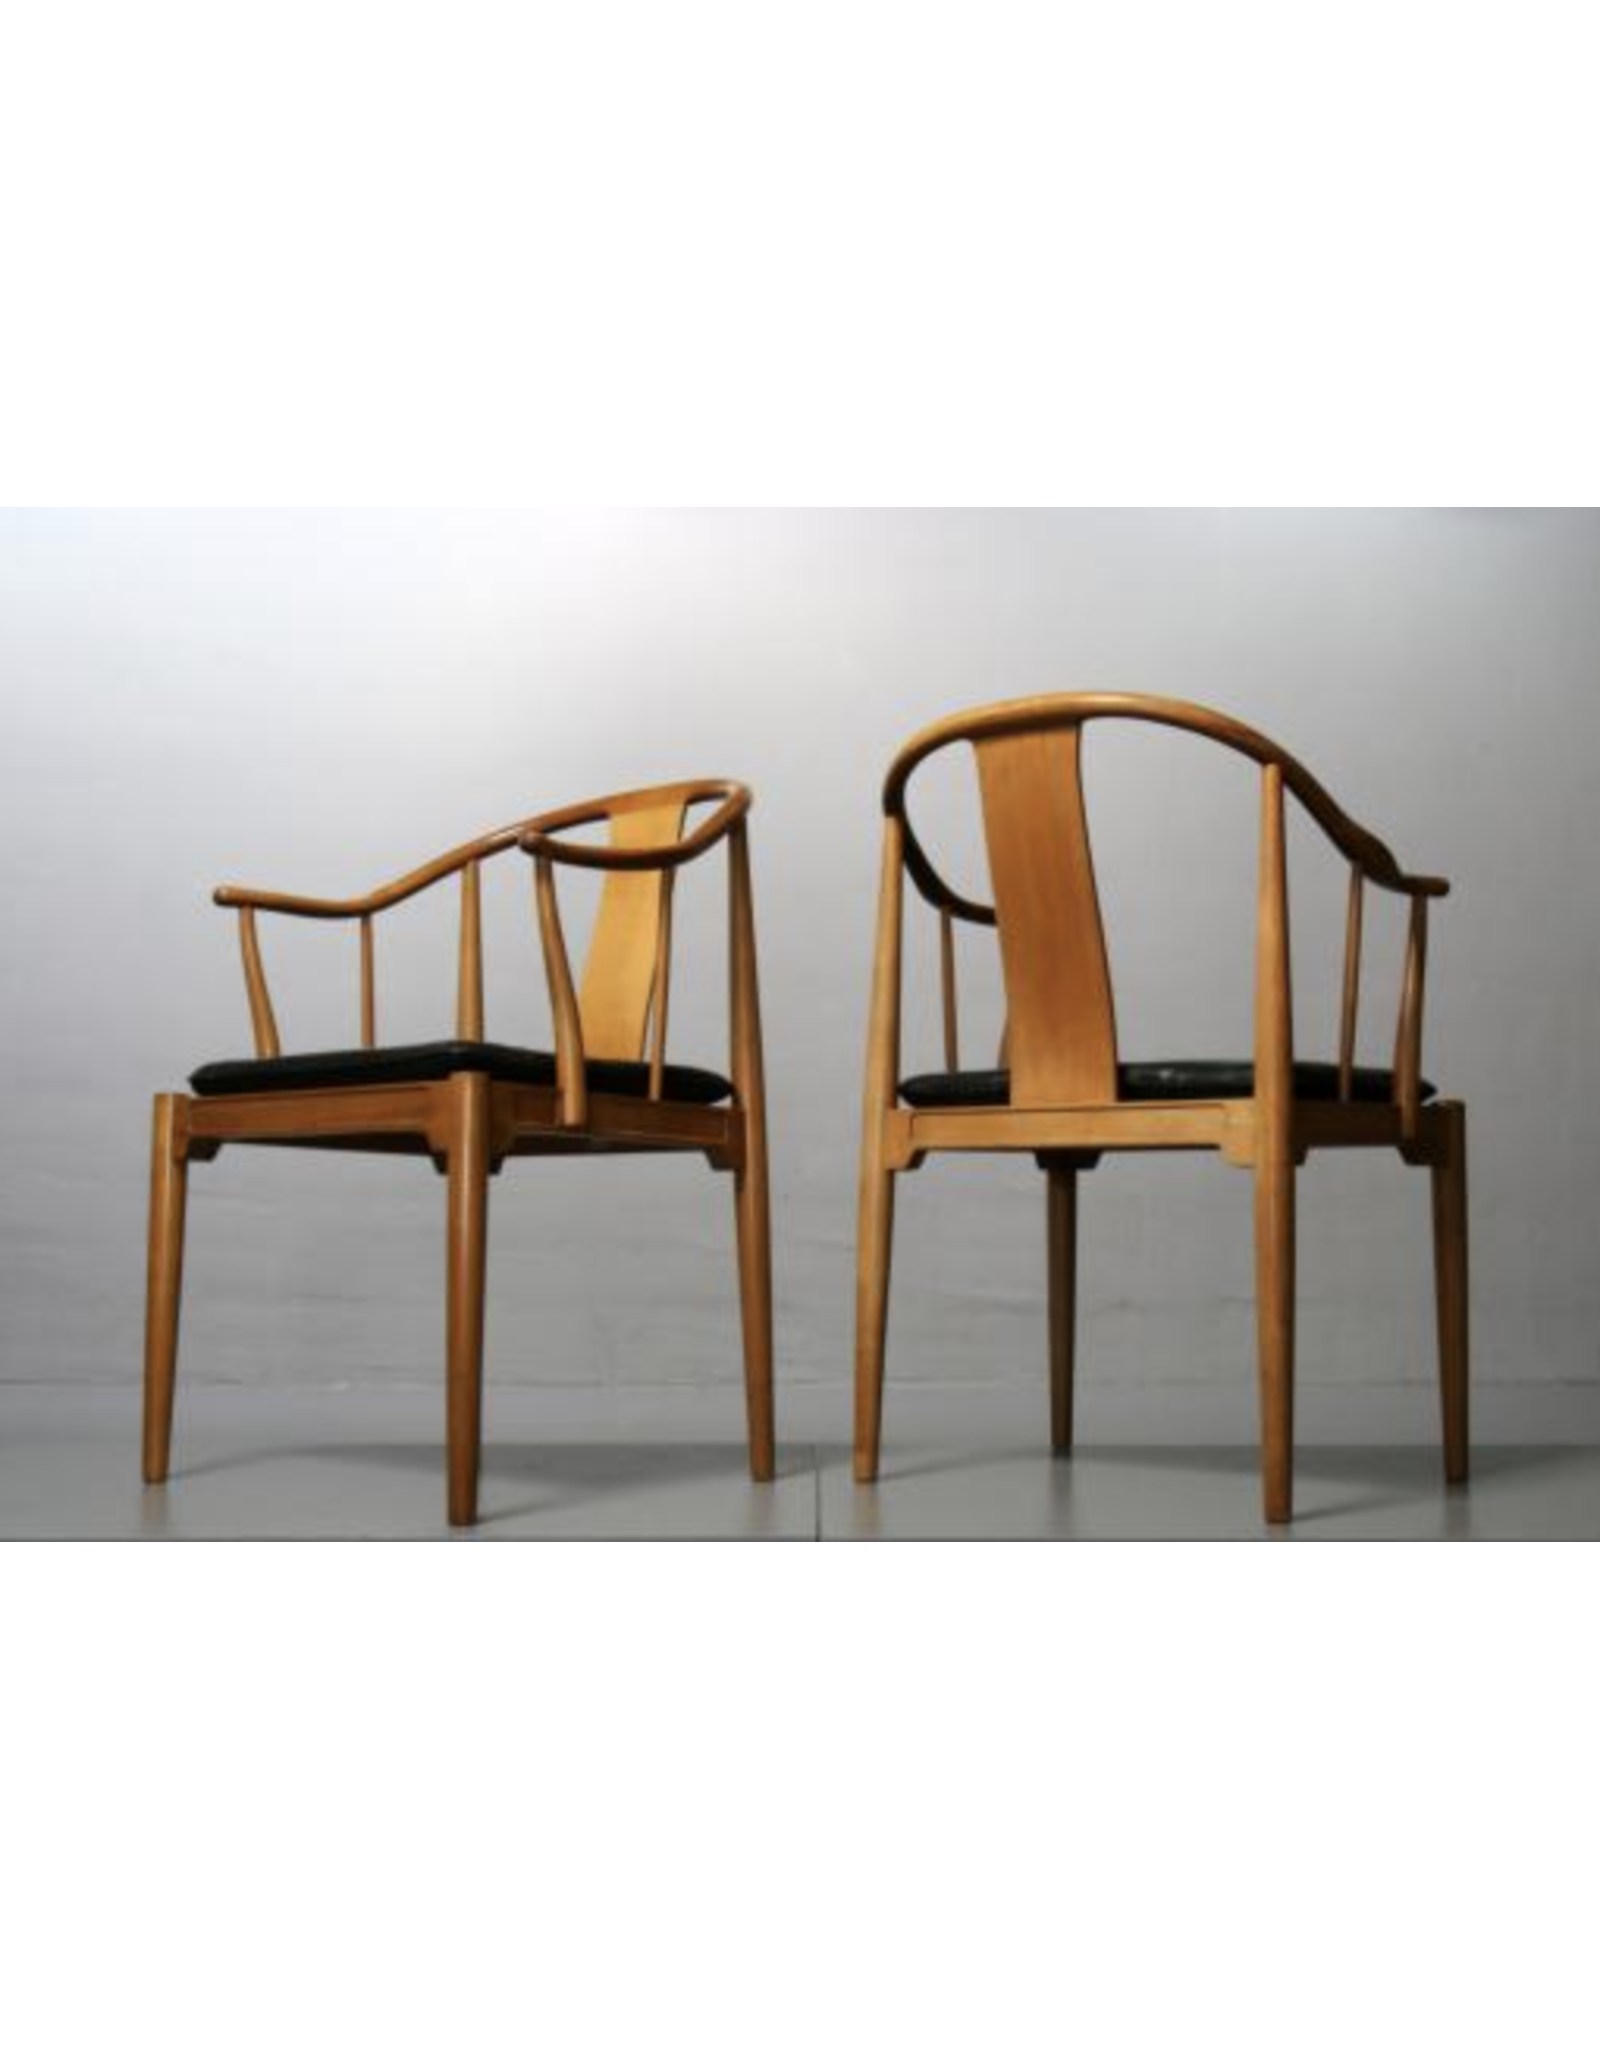 CHINA CHAIR IN CHERRY